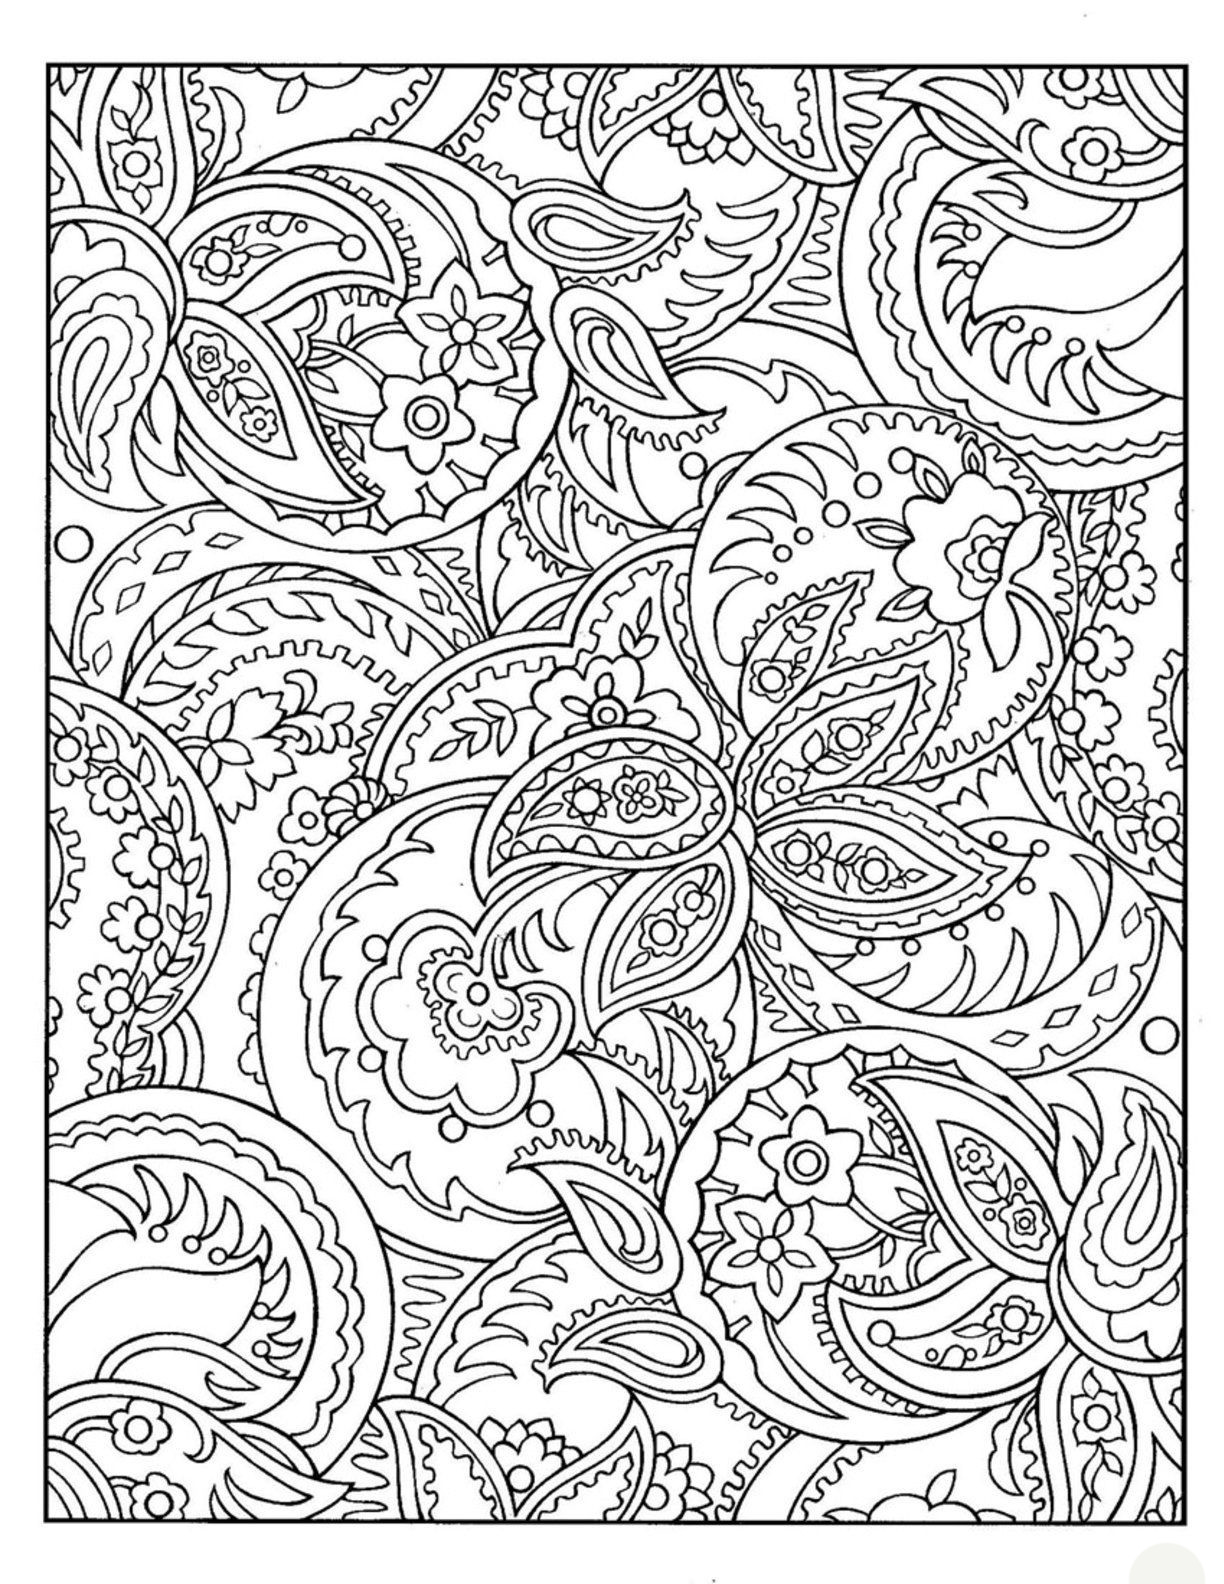 Coloring Patterns For Kids  Pattern Coloring Pages Best Coloring Pages For Kids